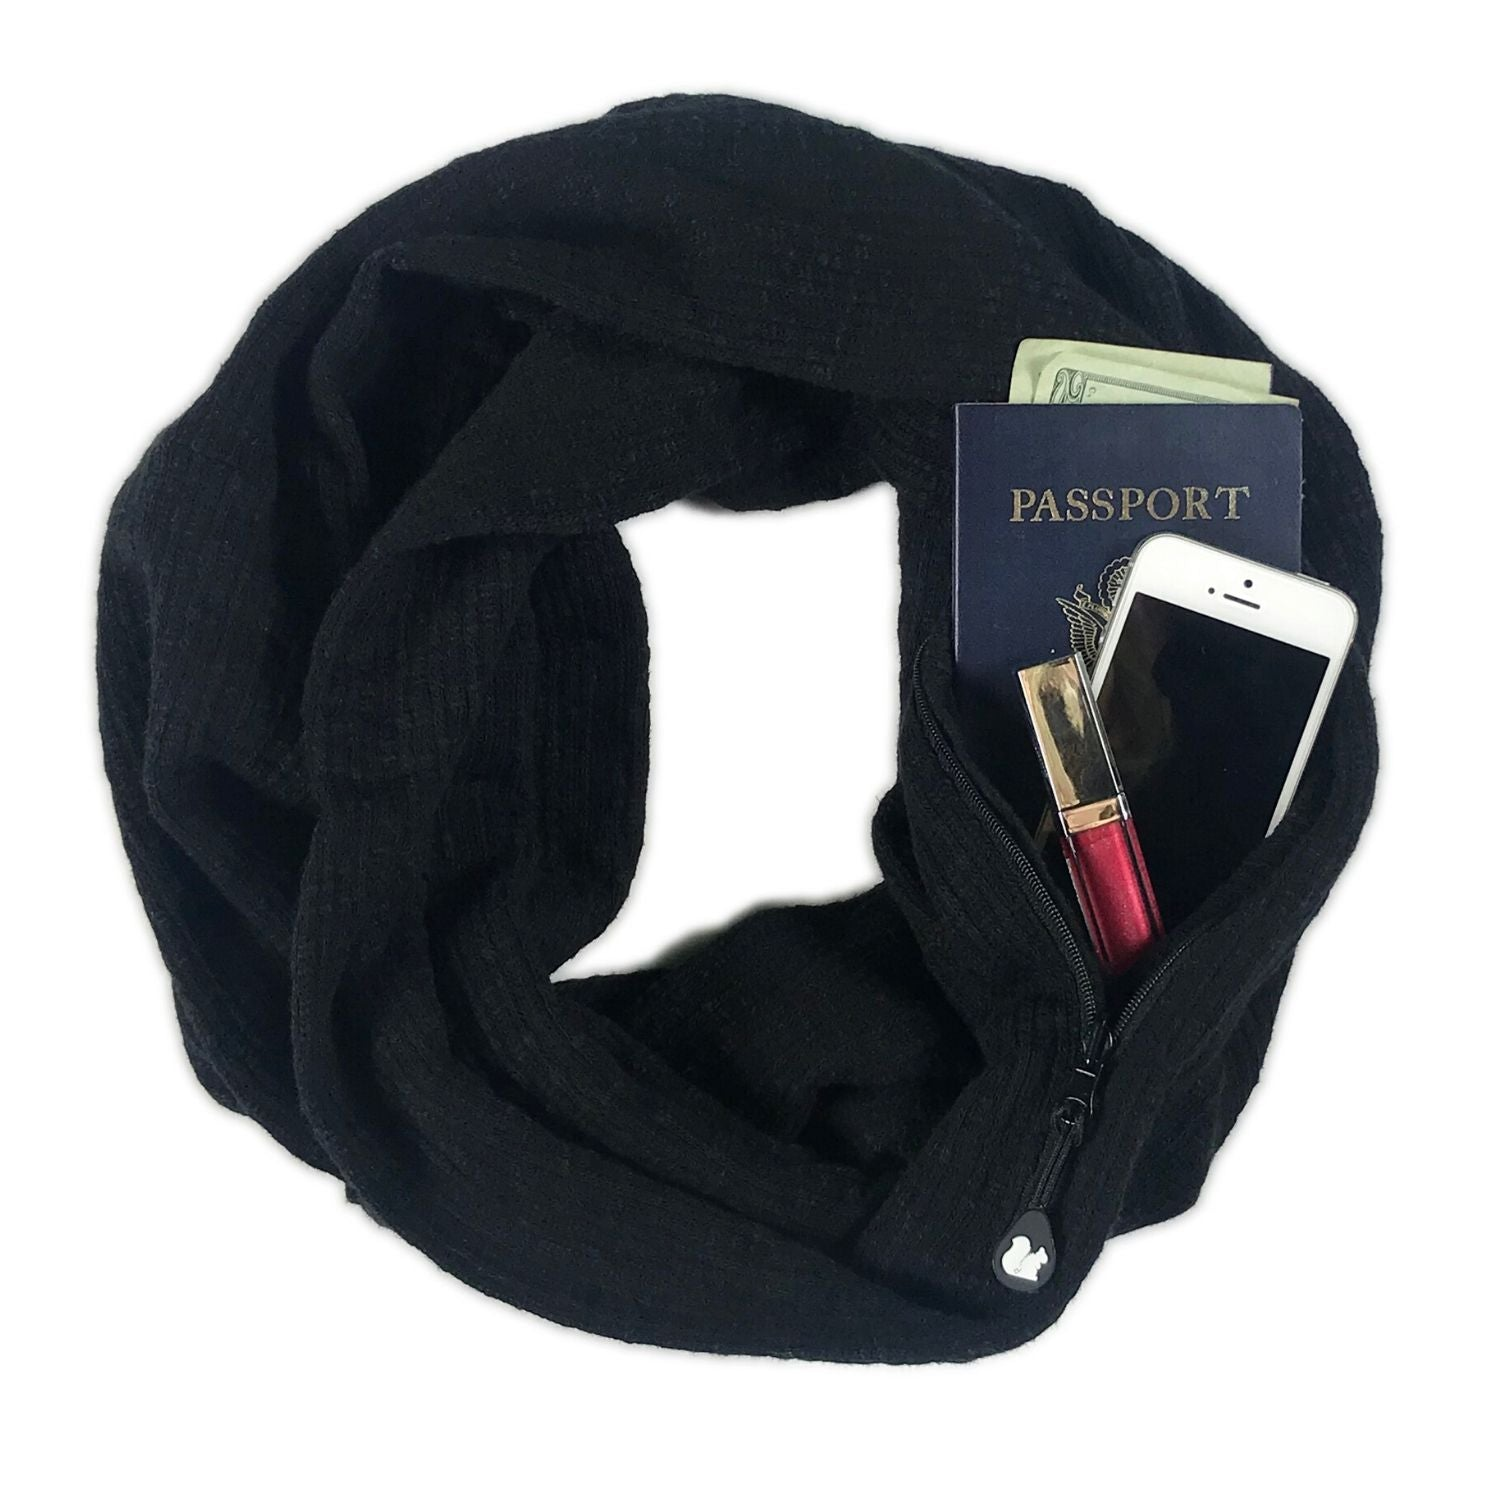 SHOLDIT Convertible Infinity Scarf with Pocket Serene Black 100% Cotton